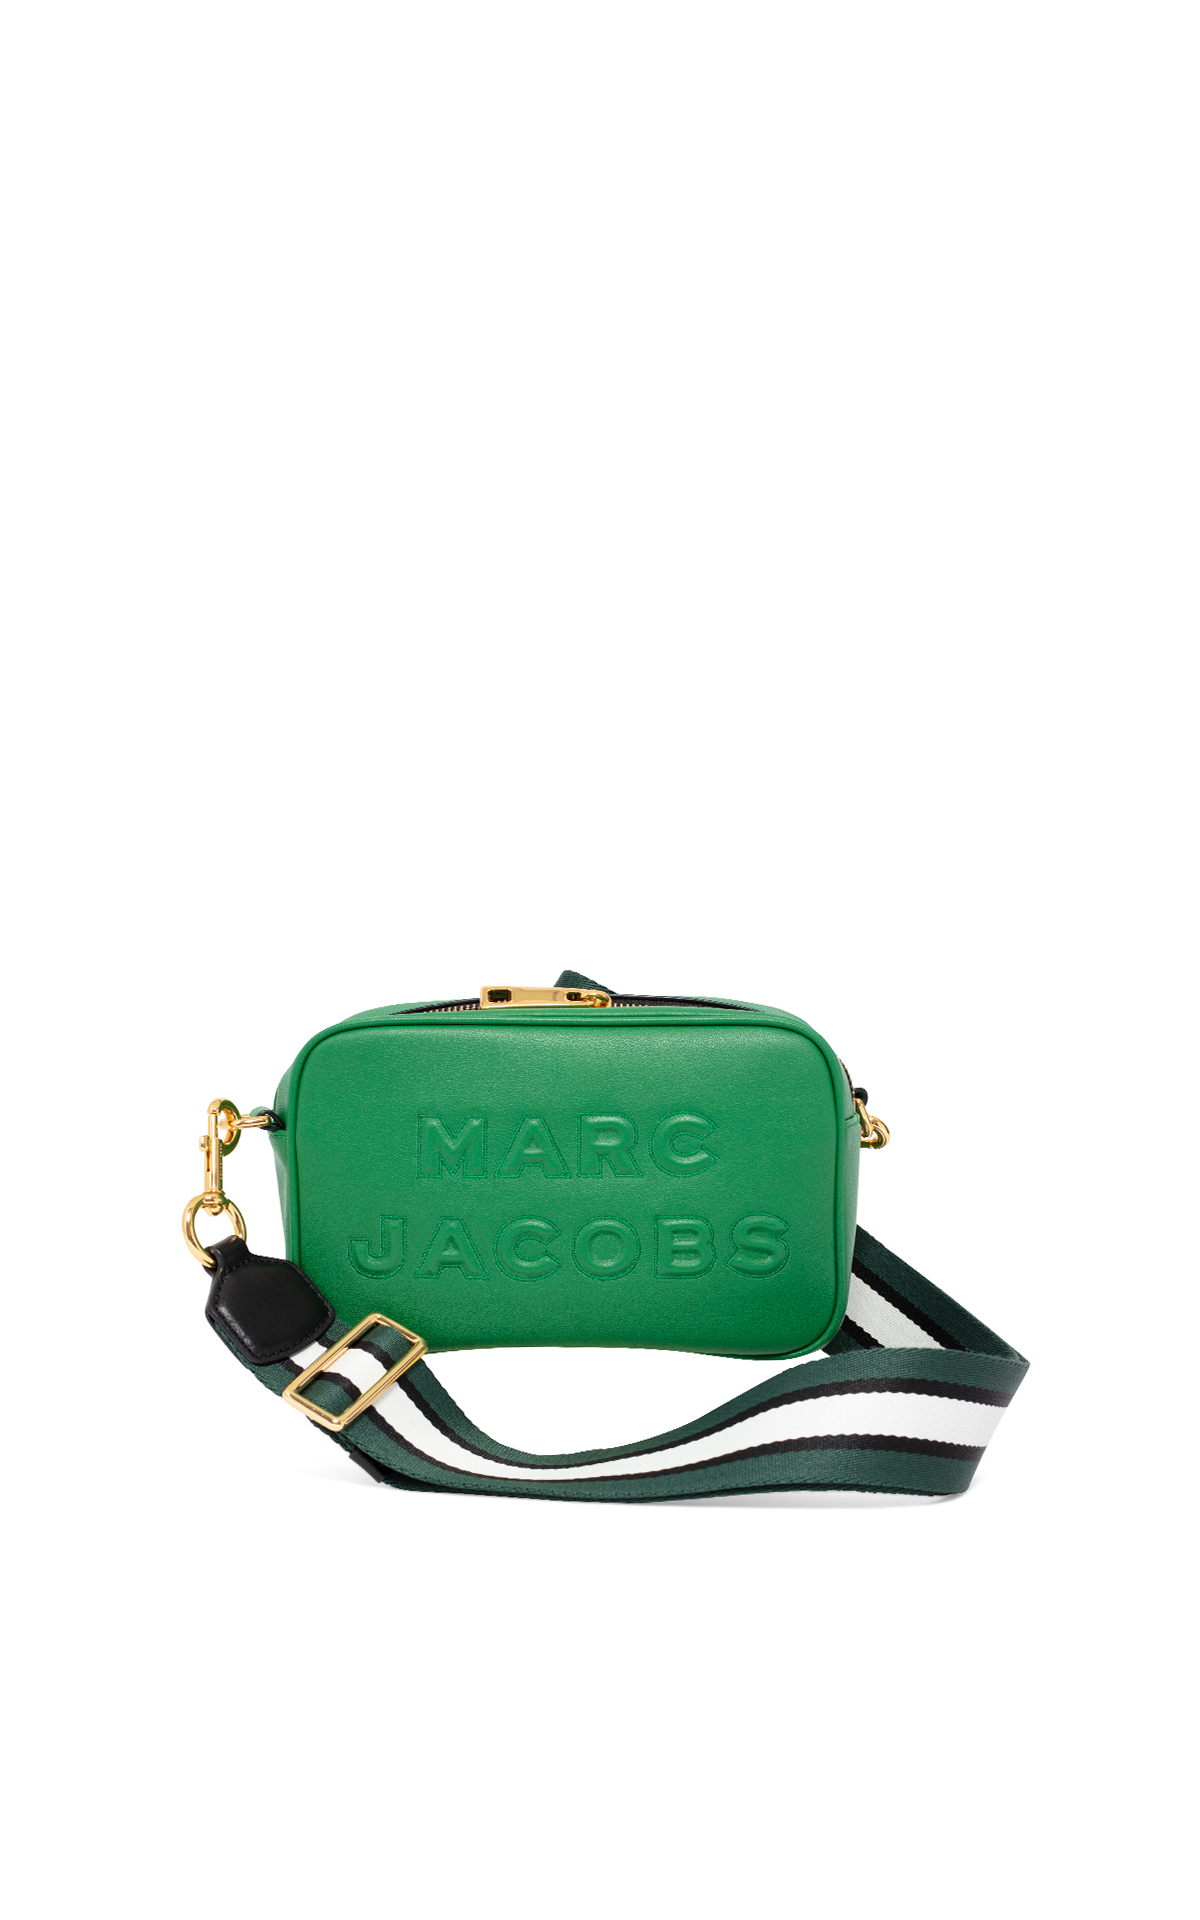 Marc Jacobs Pepper Flash bag*